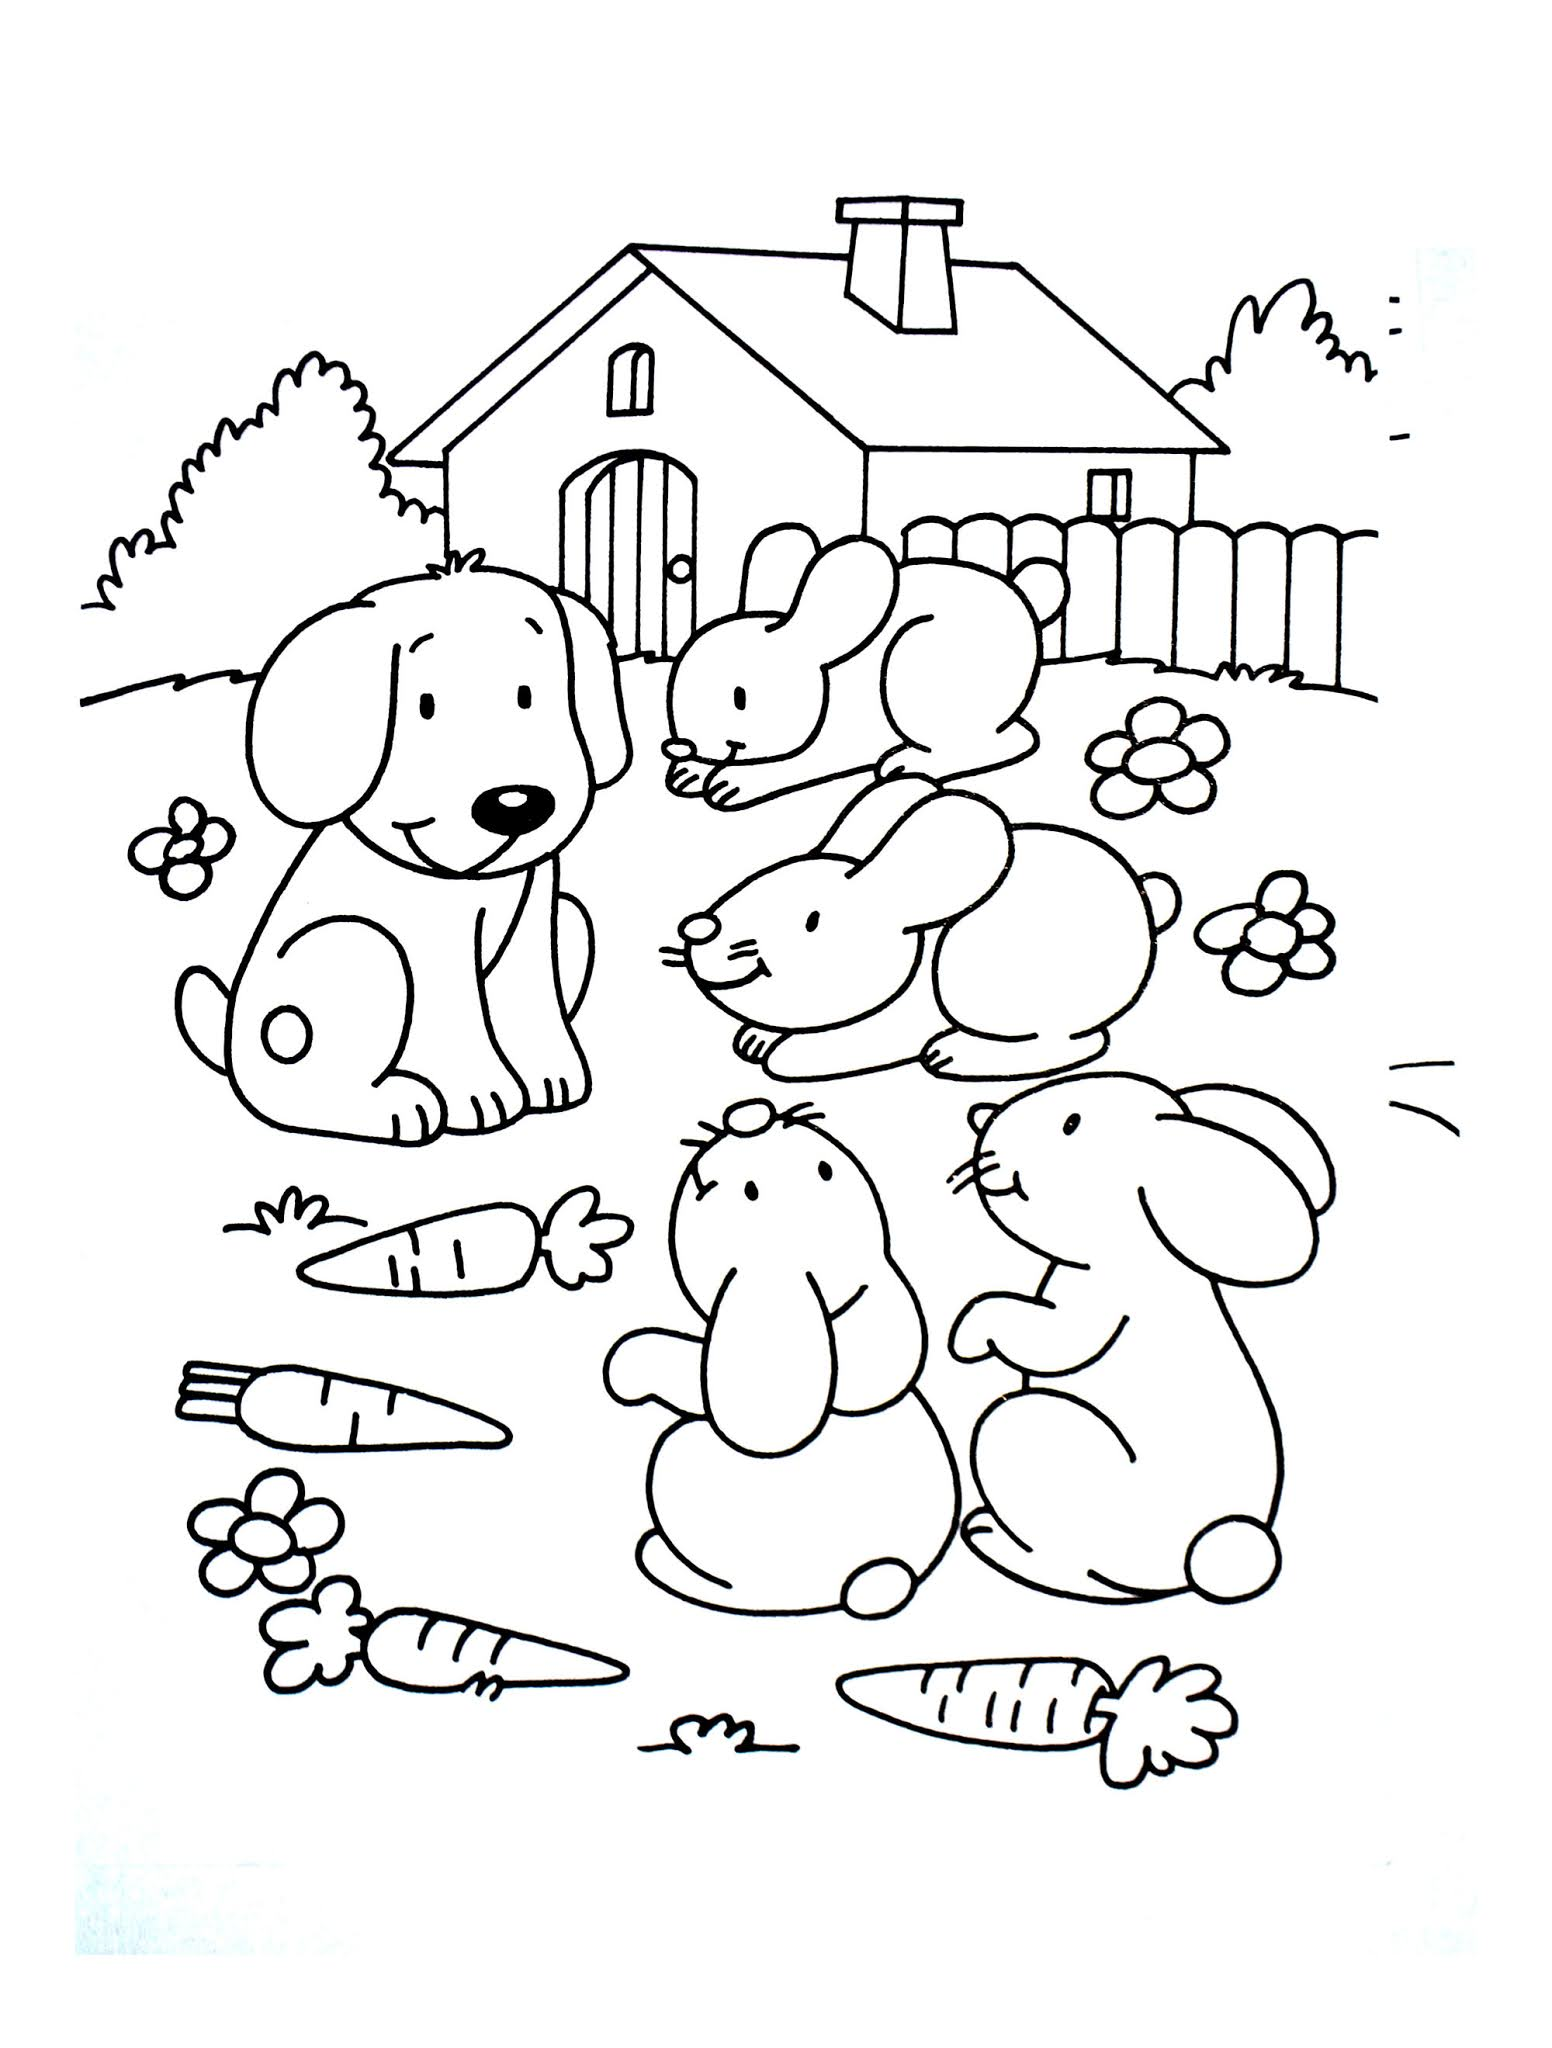 Dogs coloring pages 64